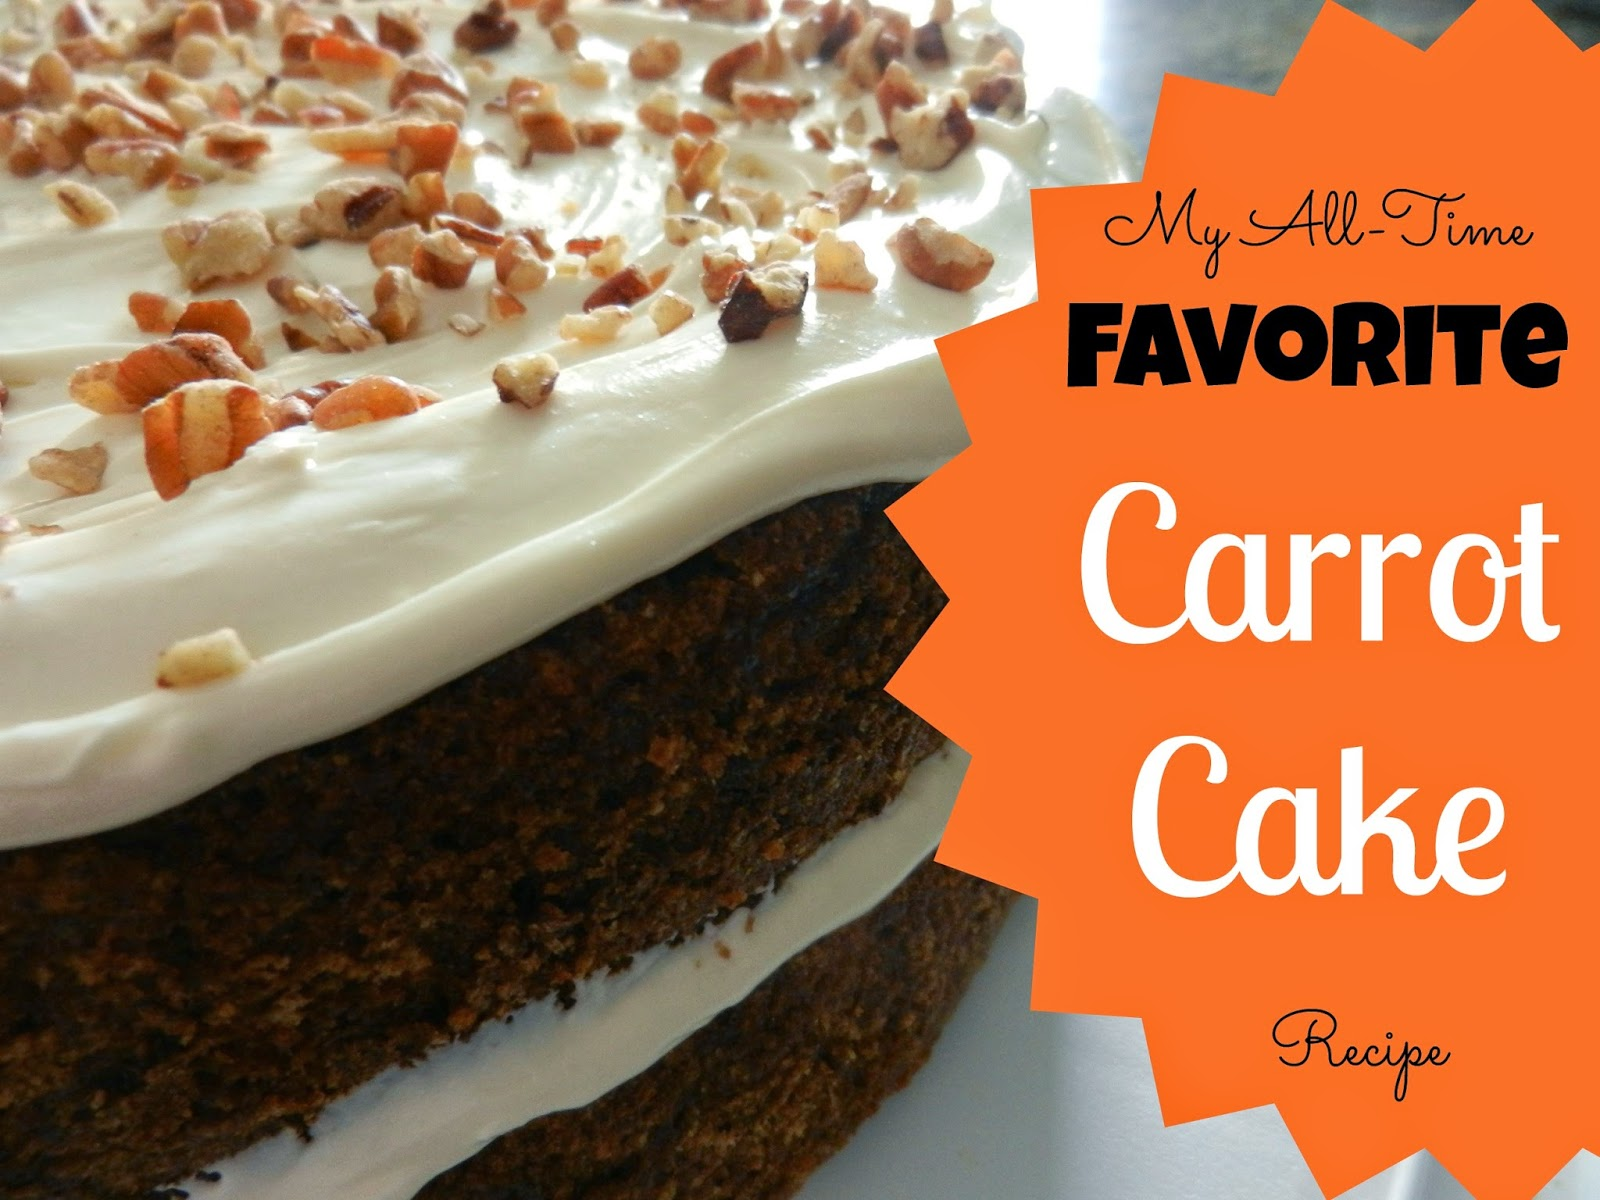 My All-Time Favorite Carrot Cake Recipe